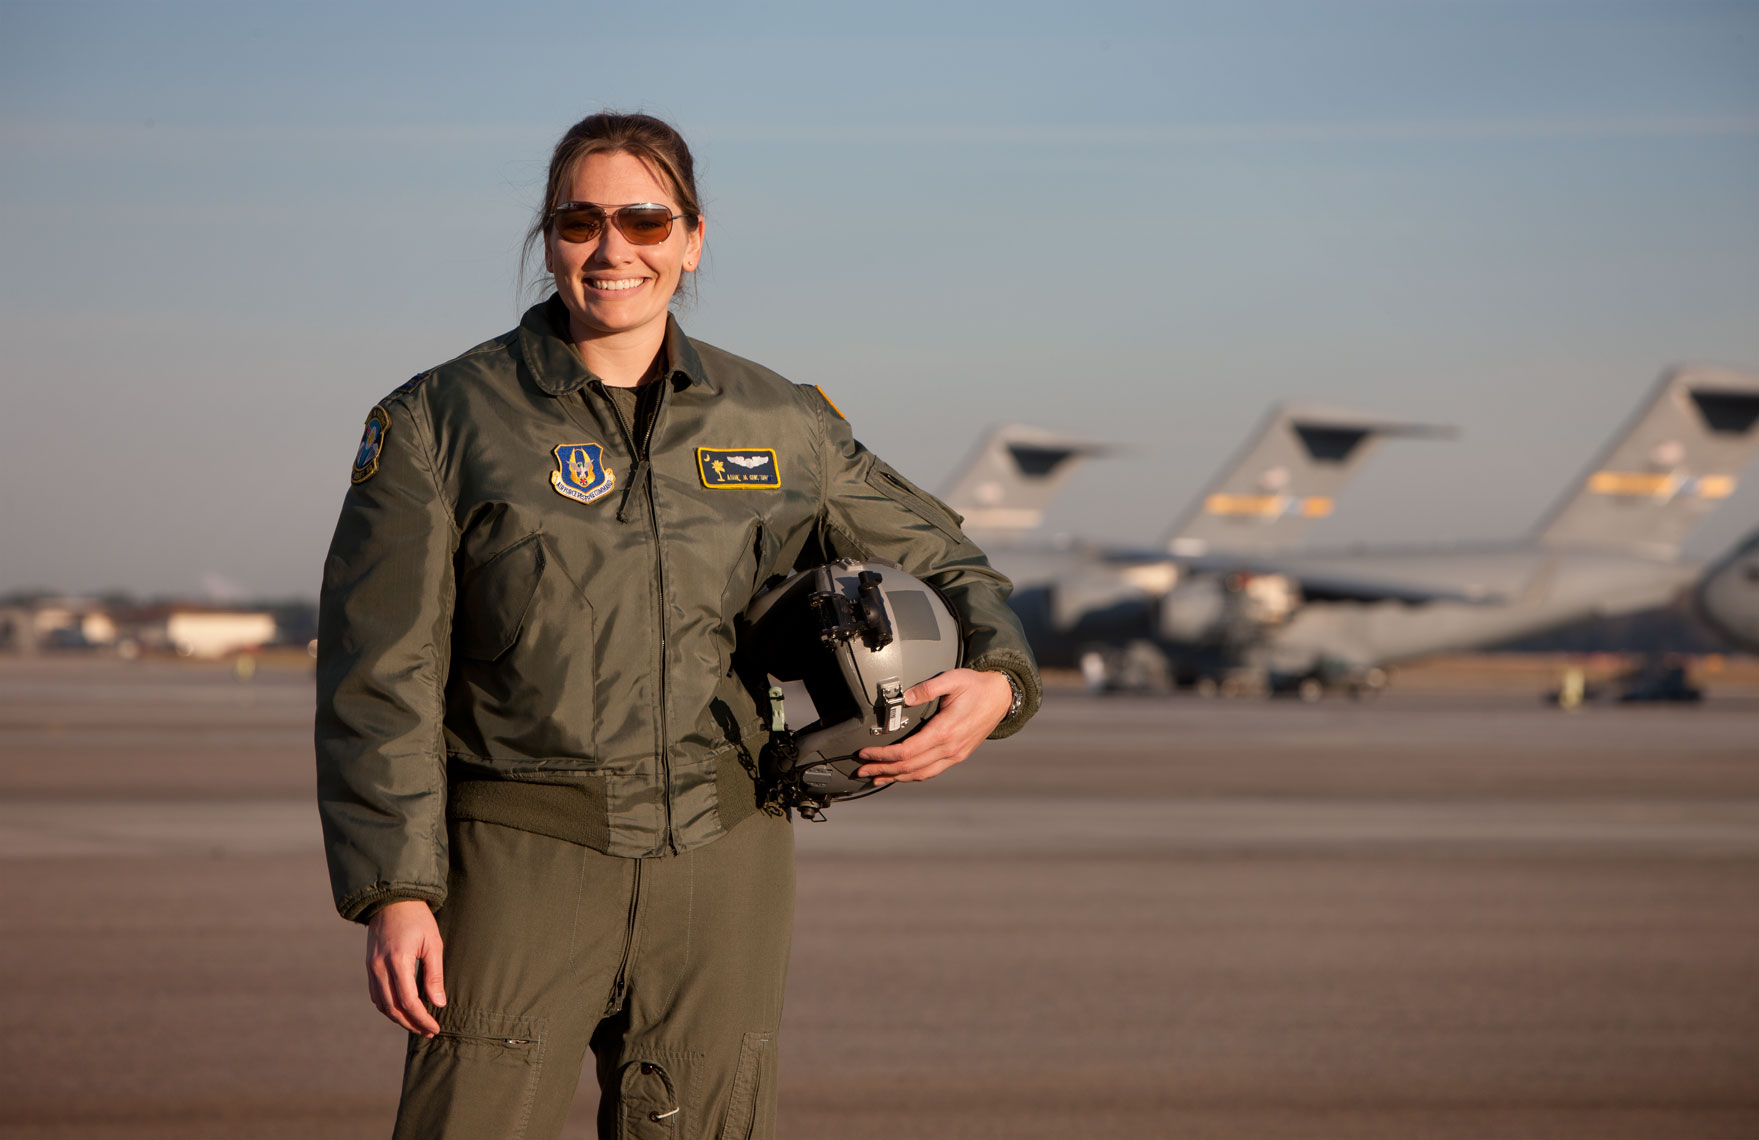 Female Airforce Captain with C-17 transports in background. Photographed for the US Veterans Administration in Charleston, SC.